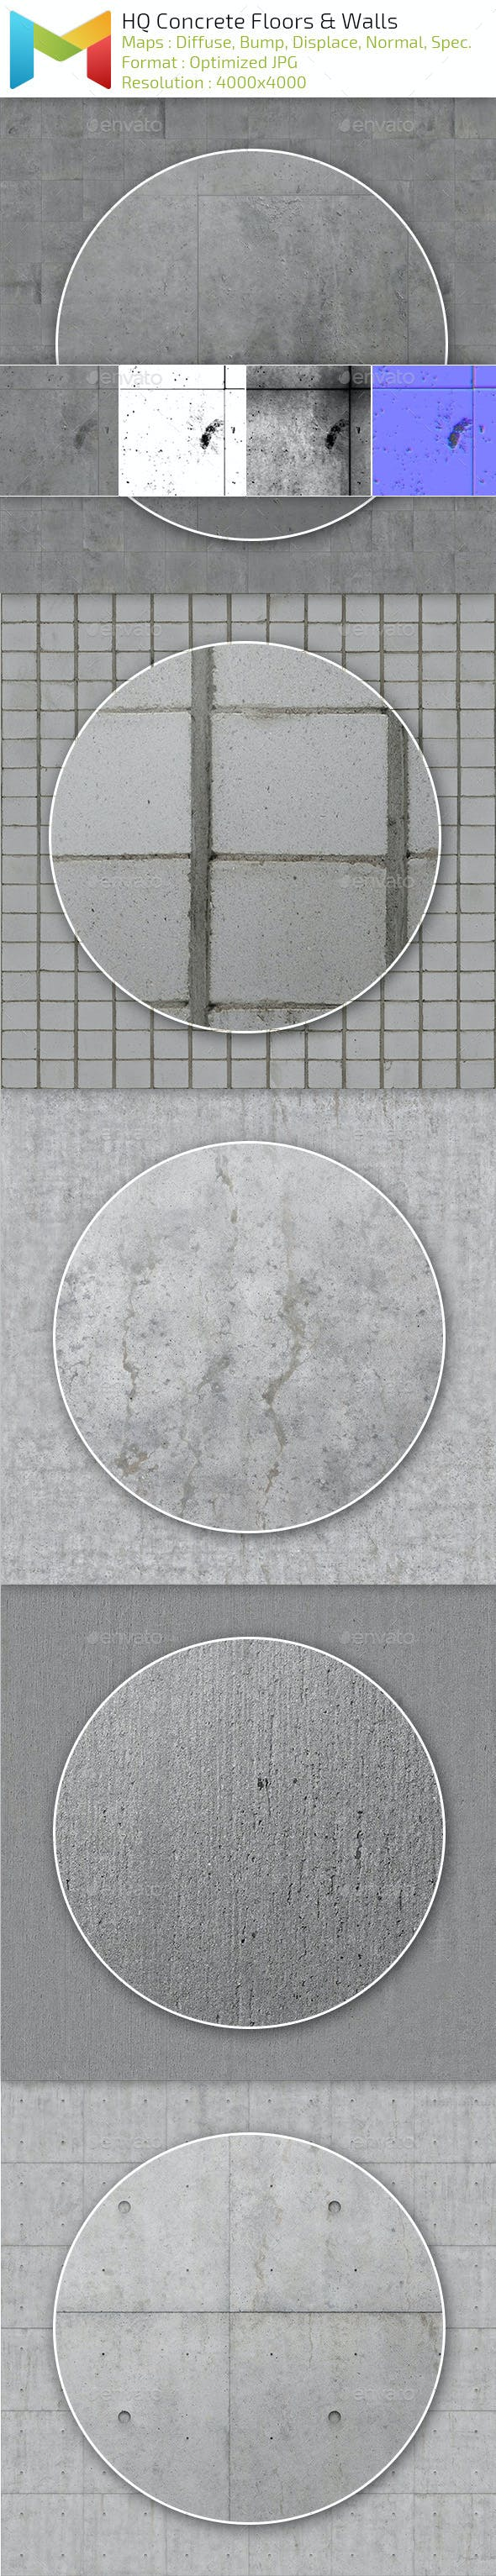 Concrete Floors and Walls HQ Textures - 3DOcean Item for Sale